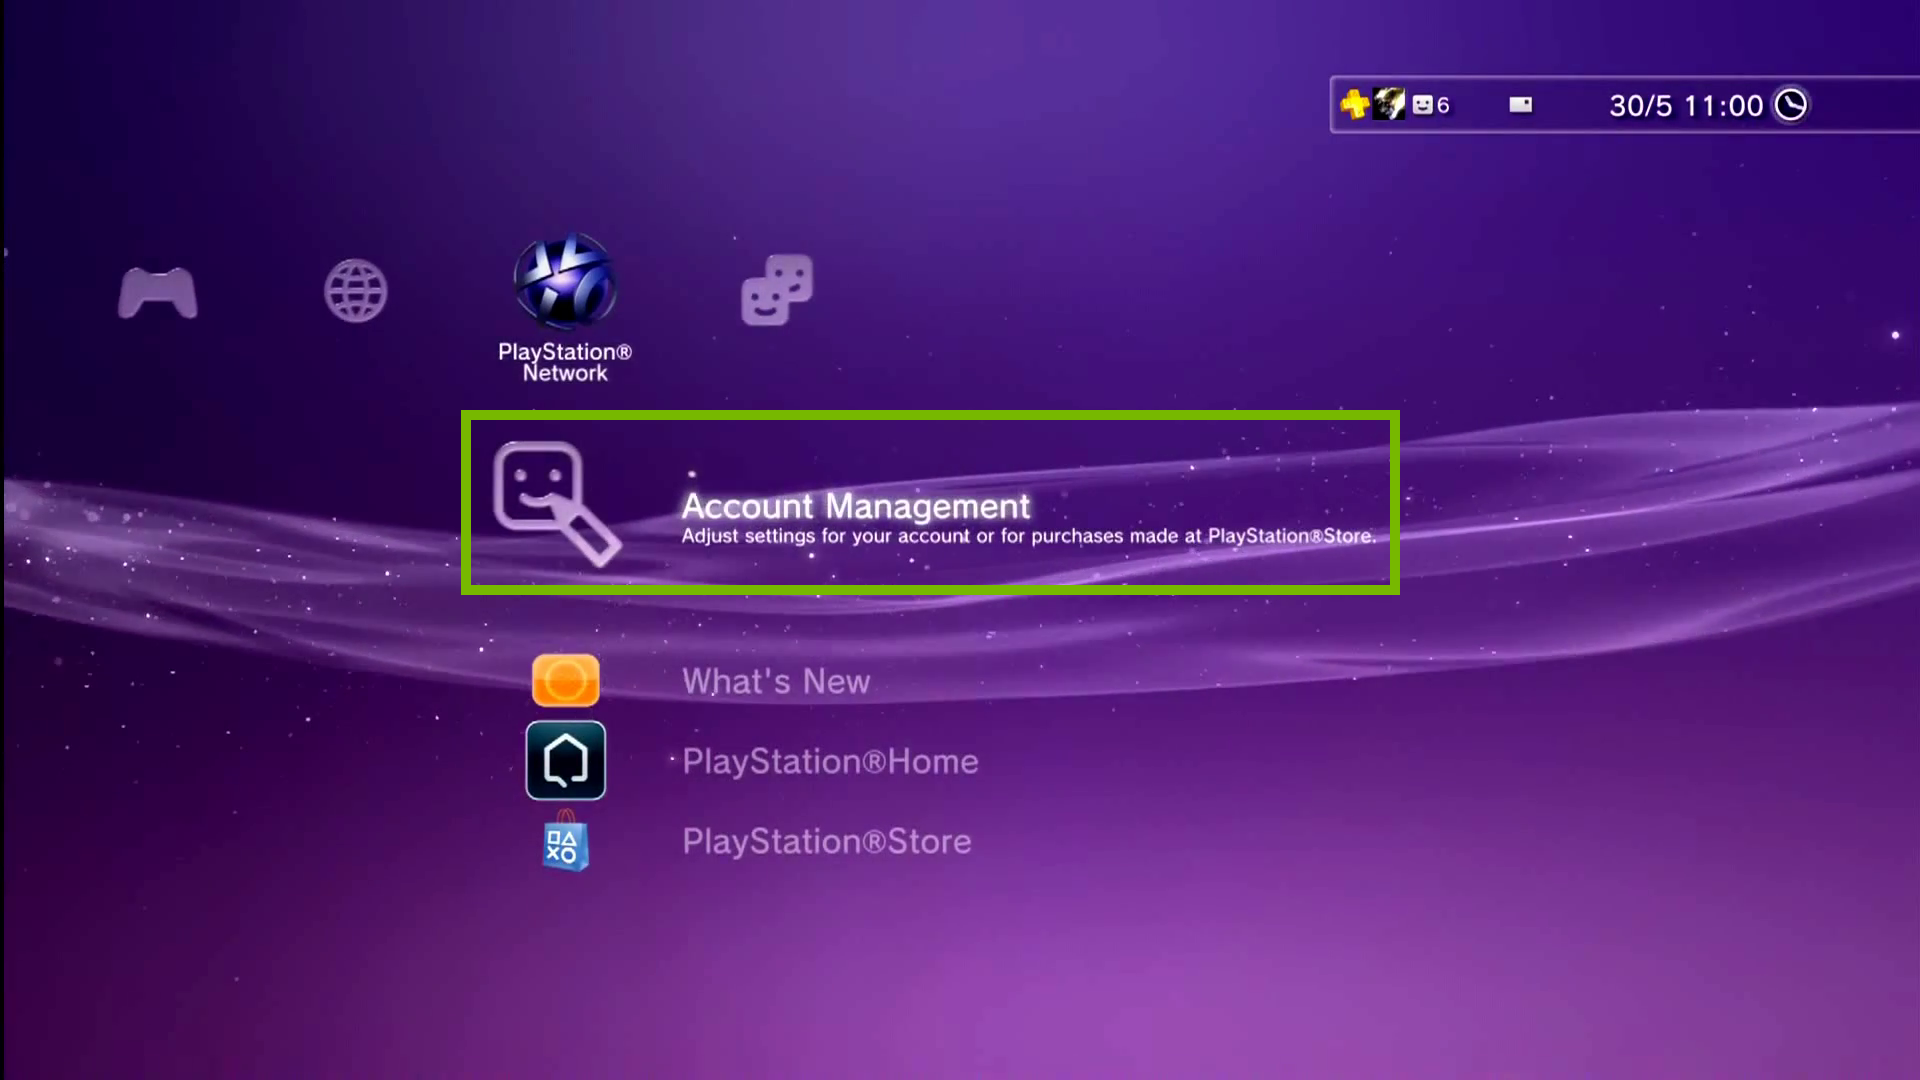 PlayStation Network menu with Account Management selected. Screenshot.